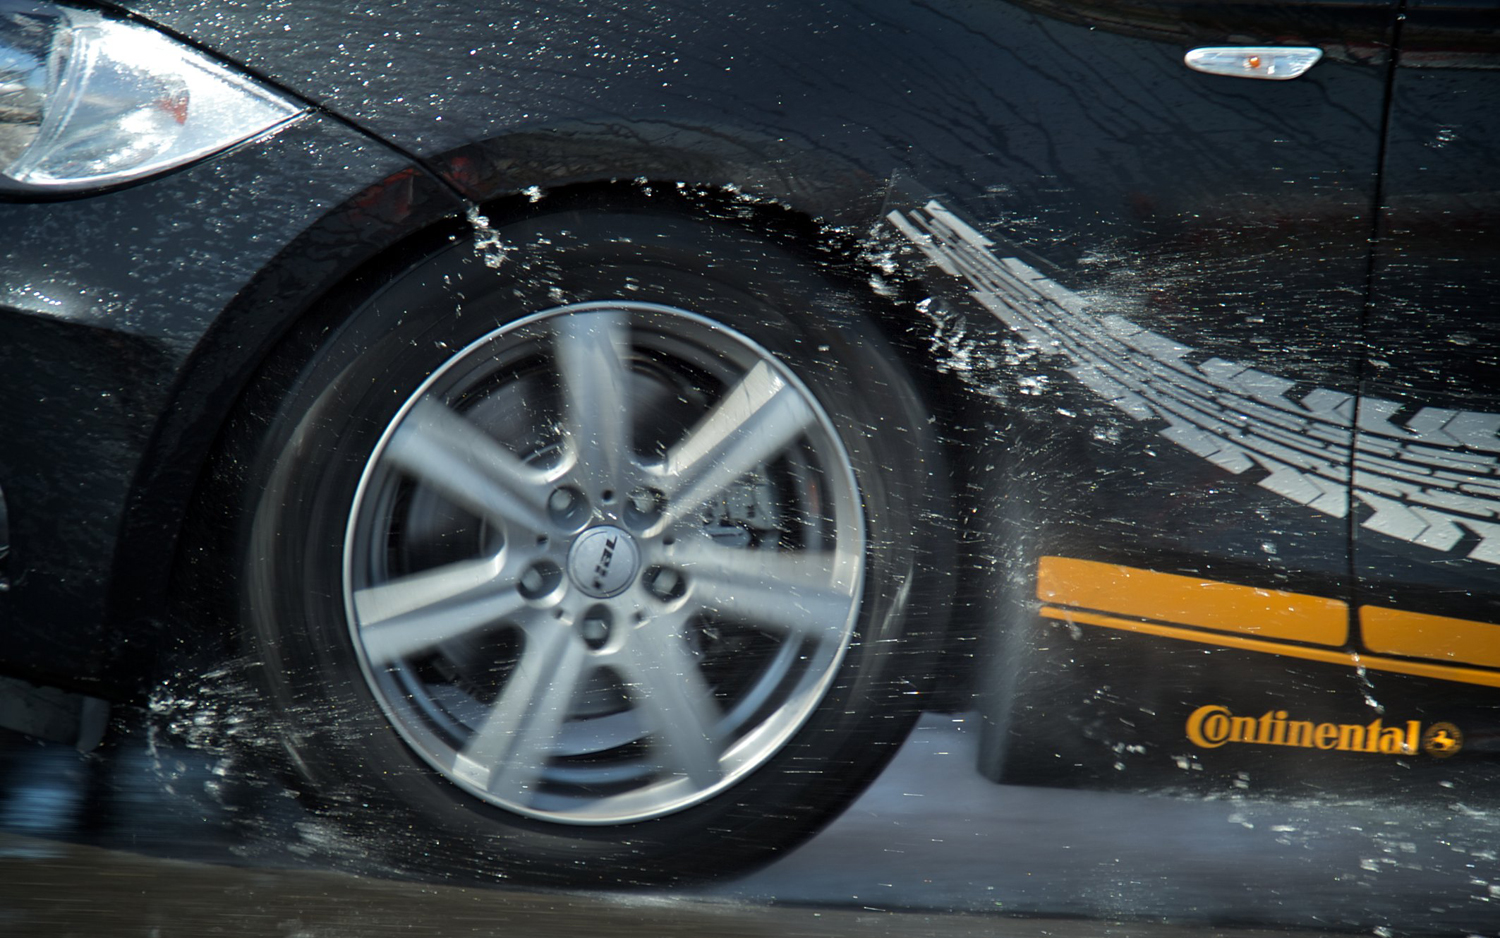 continental-tires-1